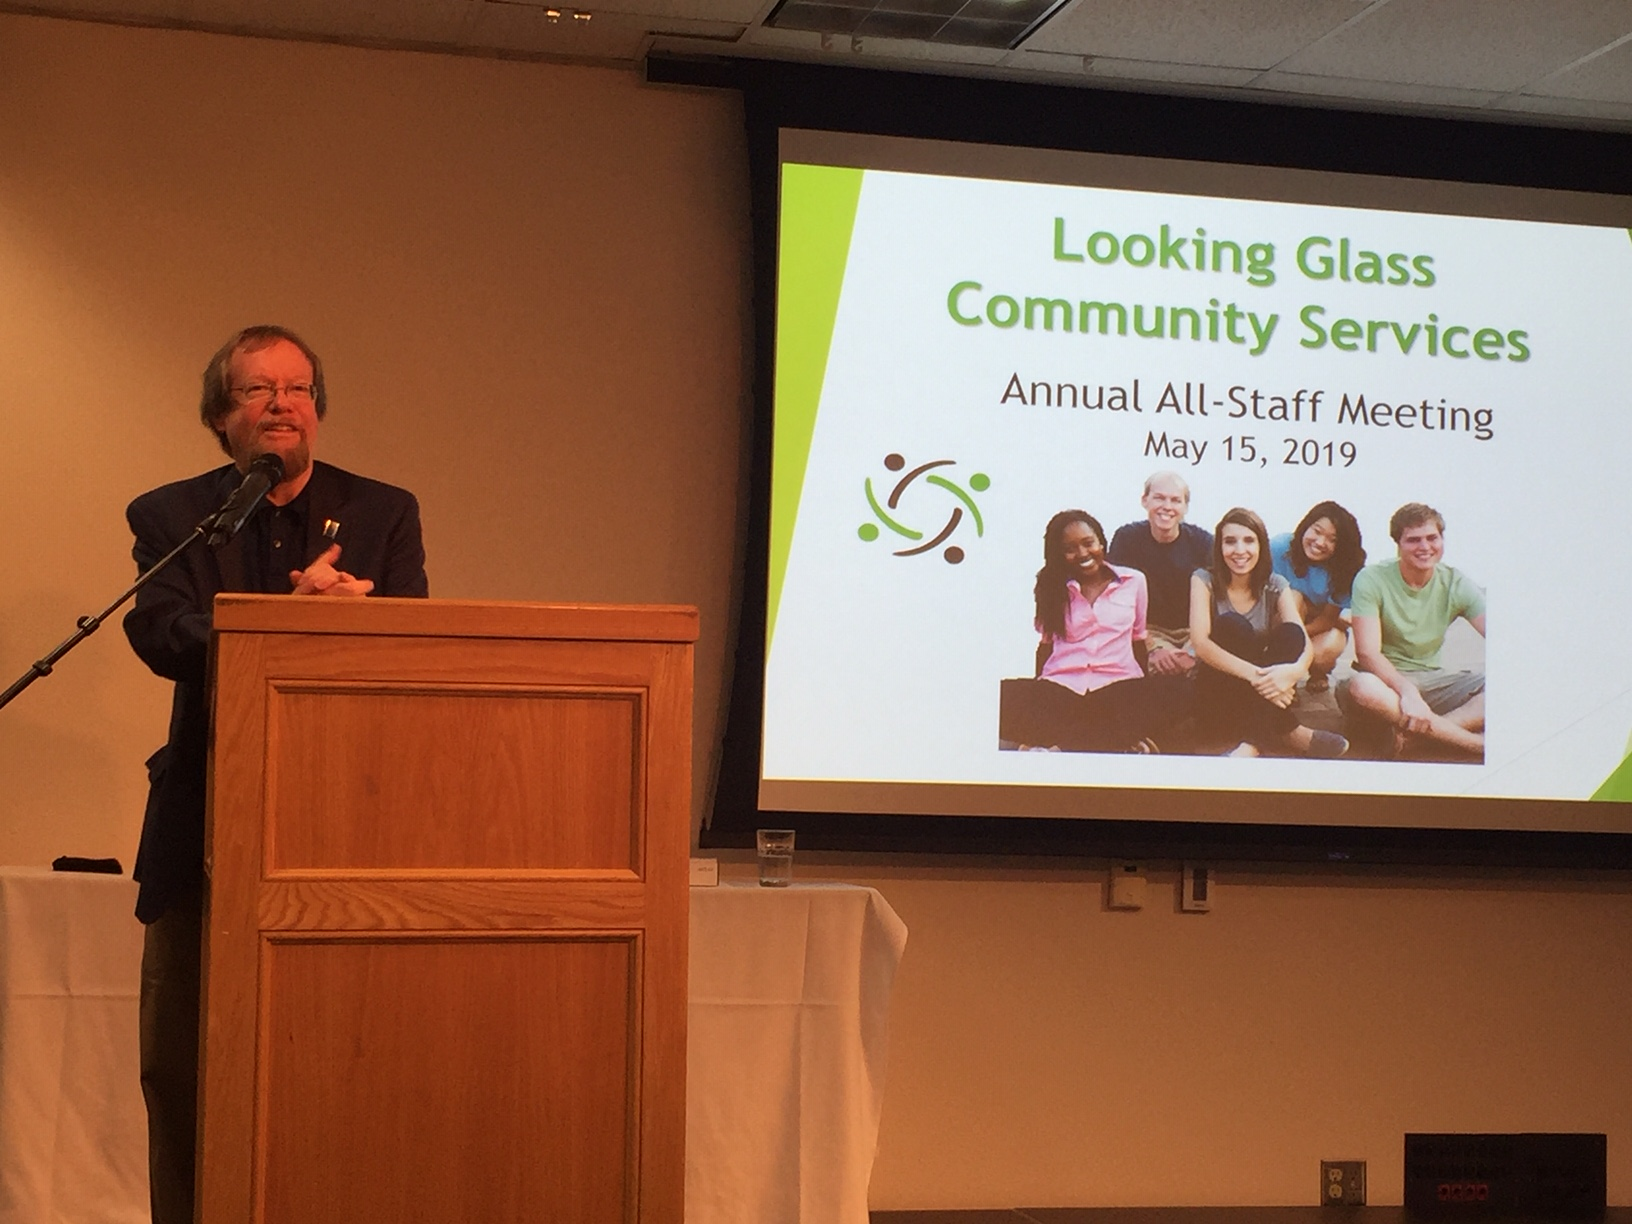 Looking Glass CEO Craig Opperman talks with Looking Glass staff members at the 2019 all staff meeting and lunch at Lane Community College on Wednesday, May 15th.